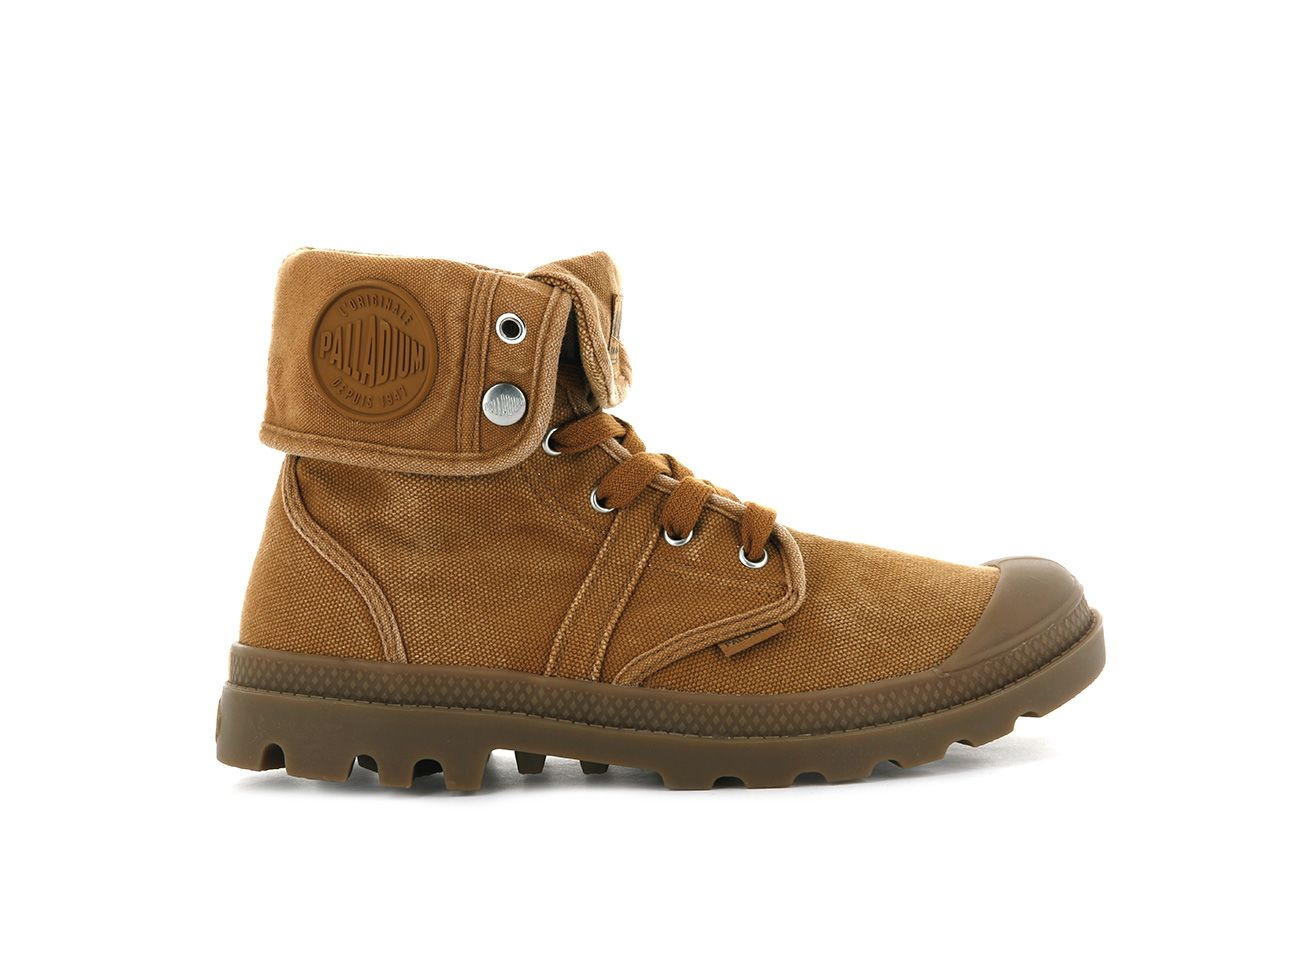 Palladium Pallabrouse Baggy in Cathay Spice/Mid Gum